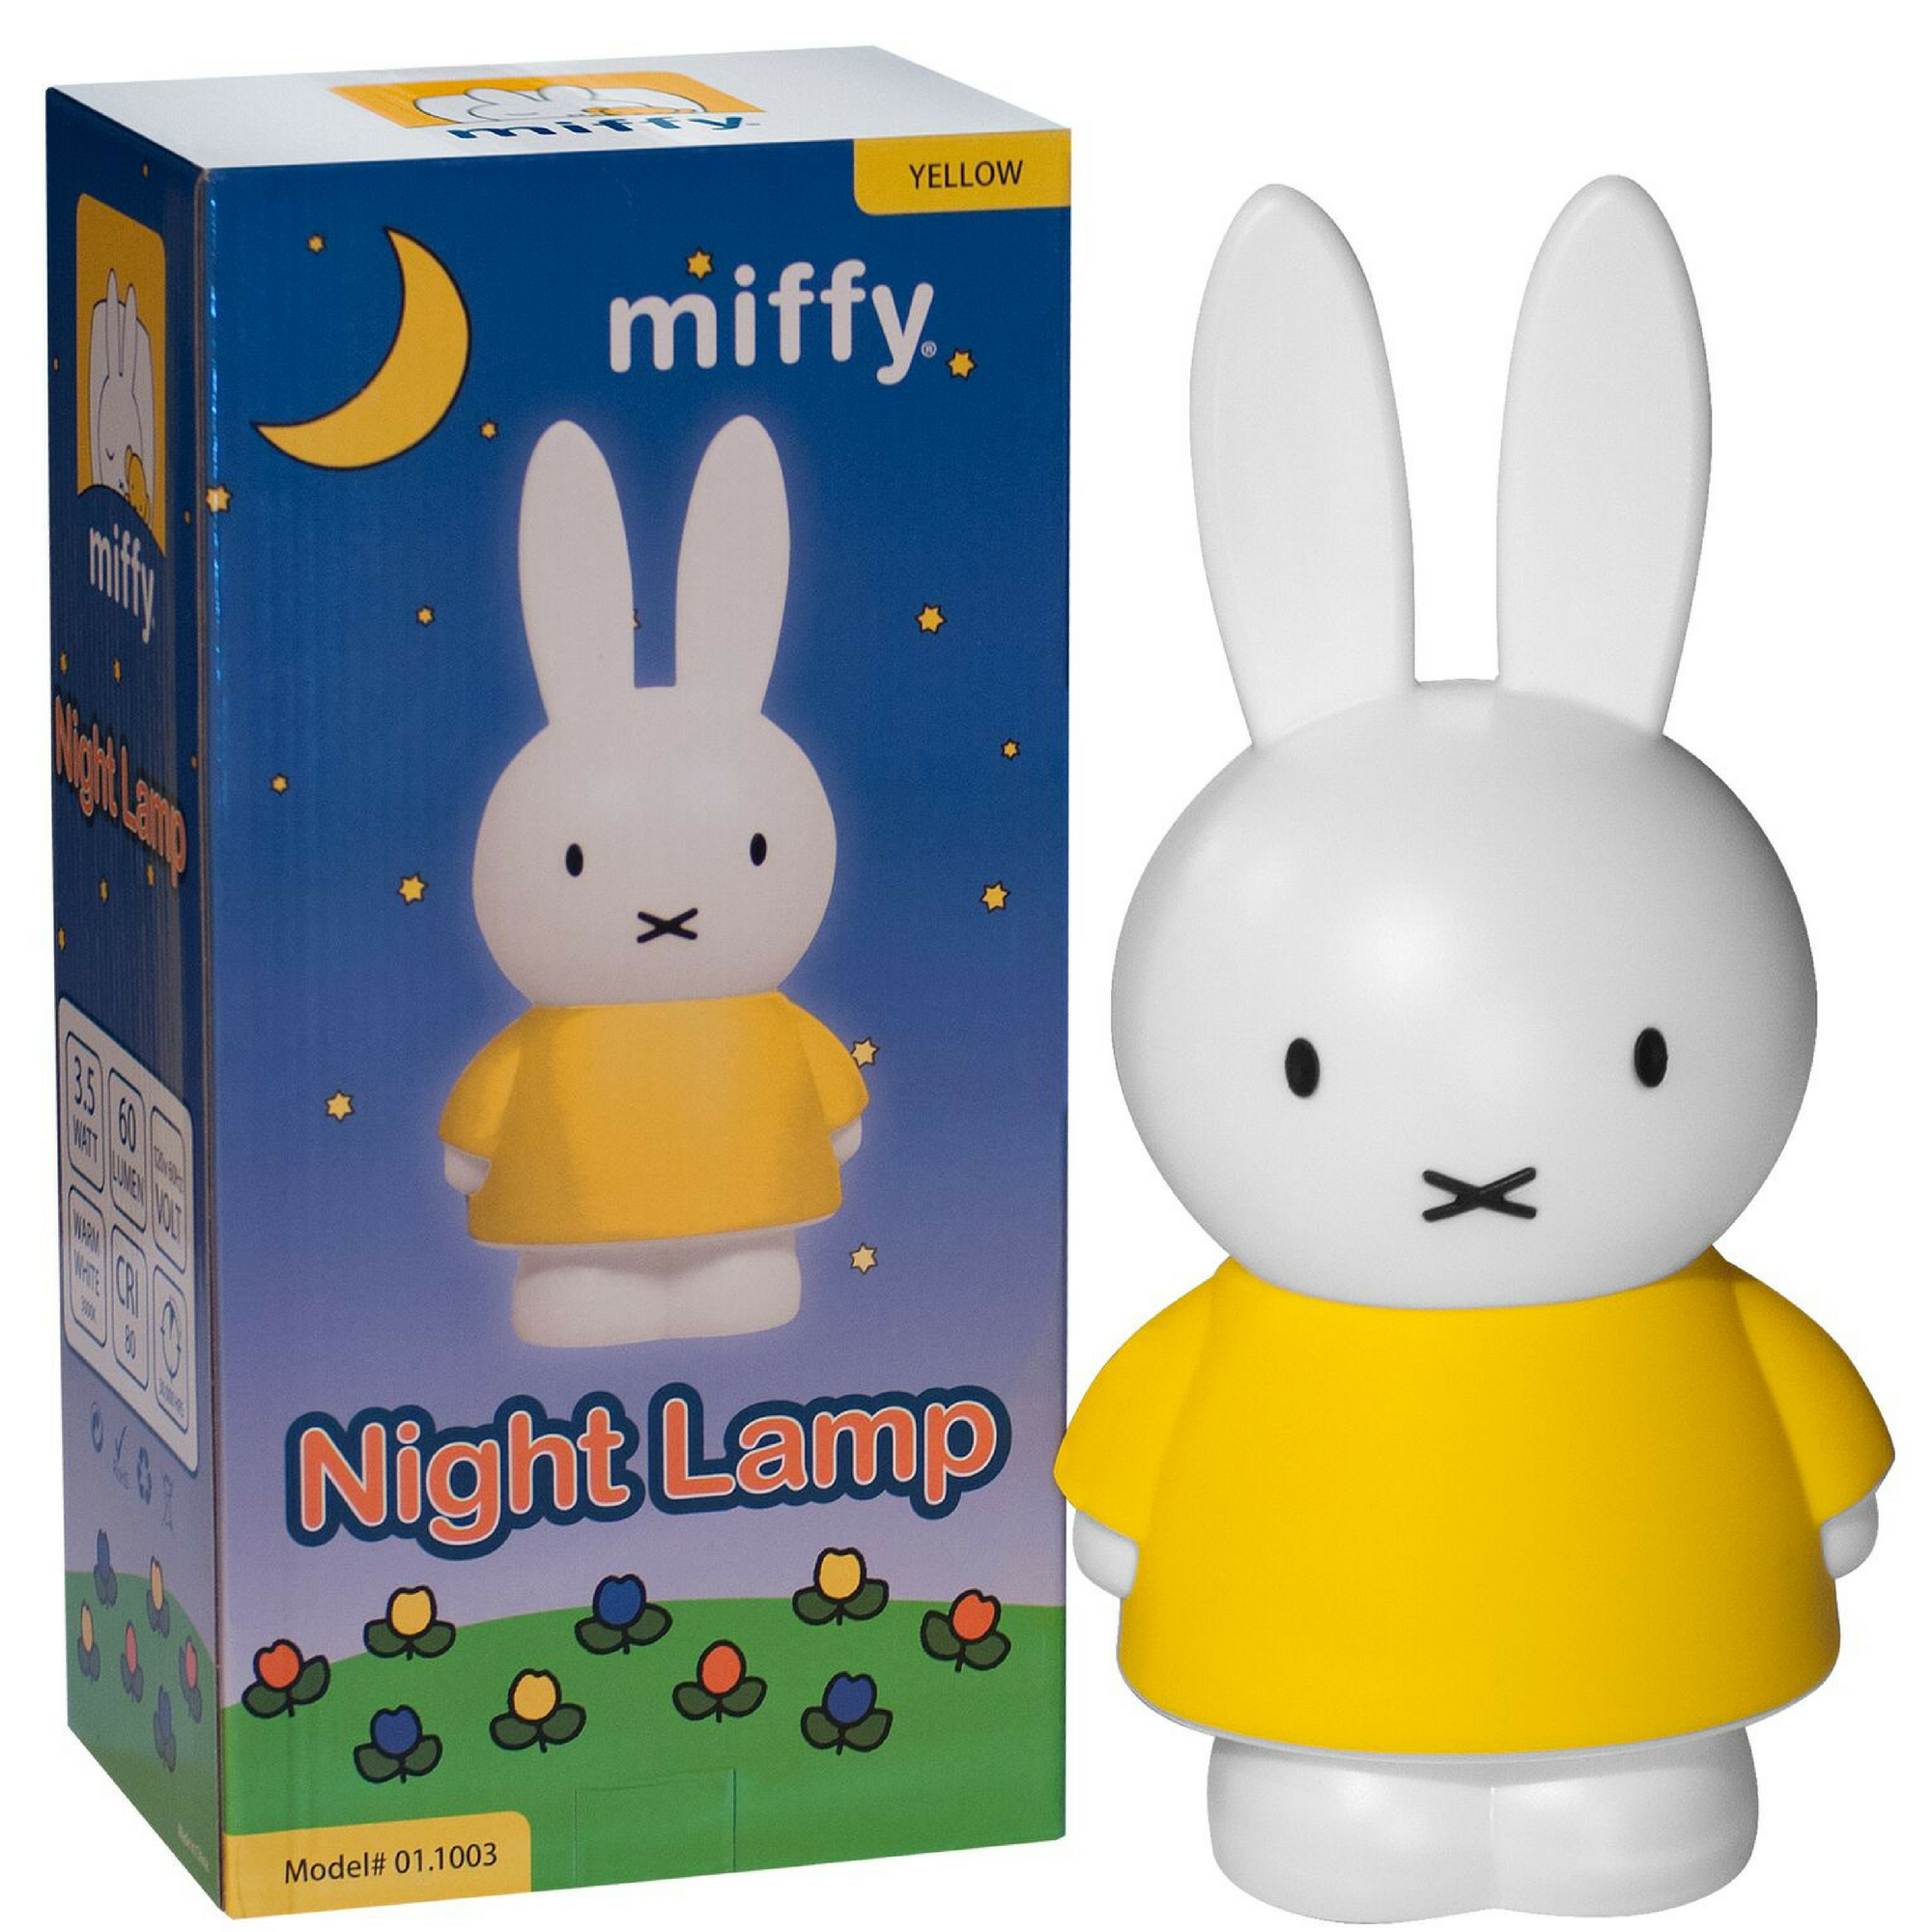 Miffy Lamp | LED Bunny Night Light for Nijntne Boek, Rabbit Lovers, and Kids for Sweet Dreams with Miffy, Yellow